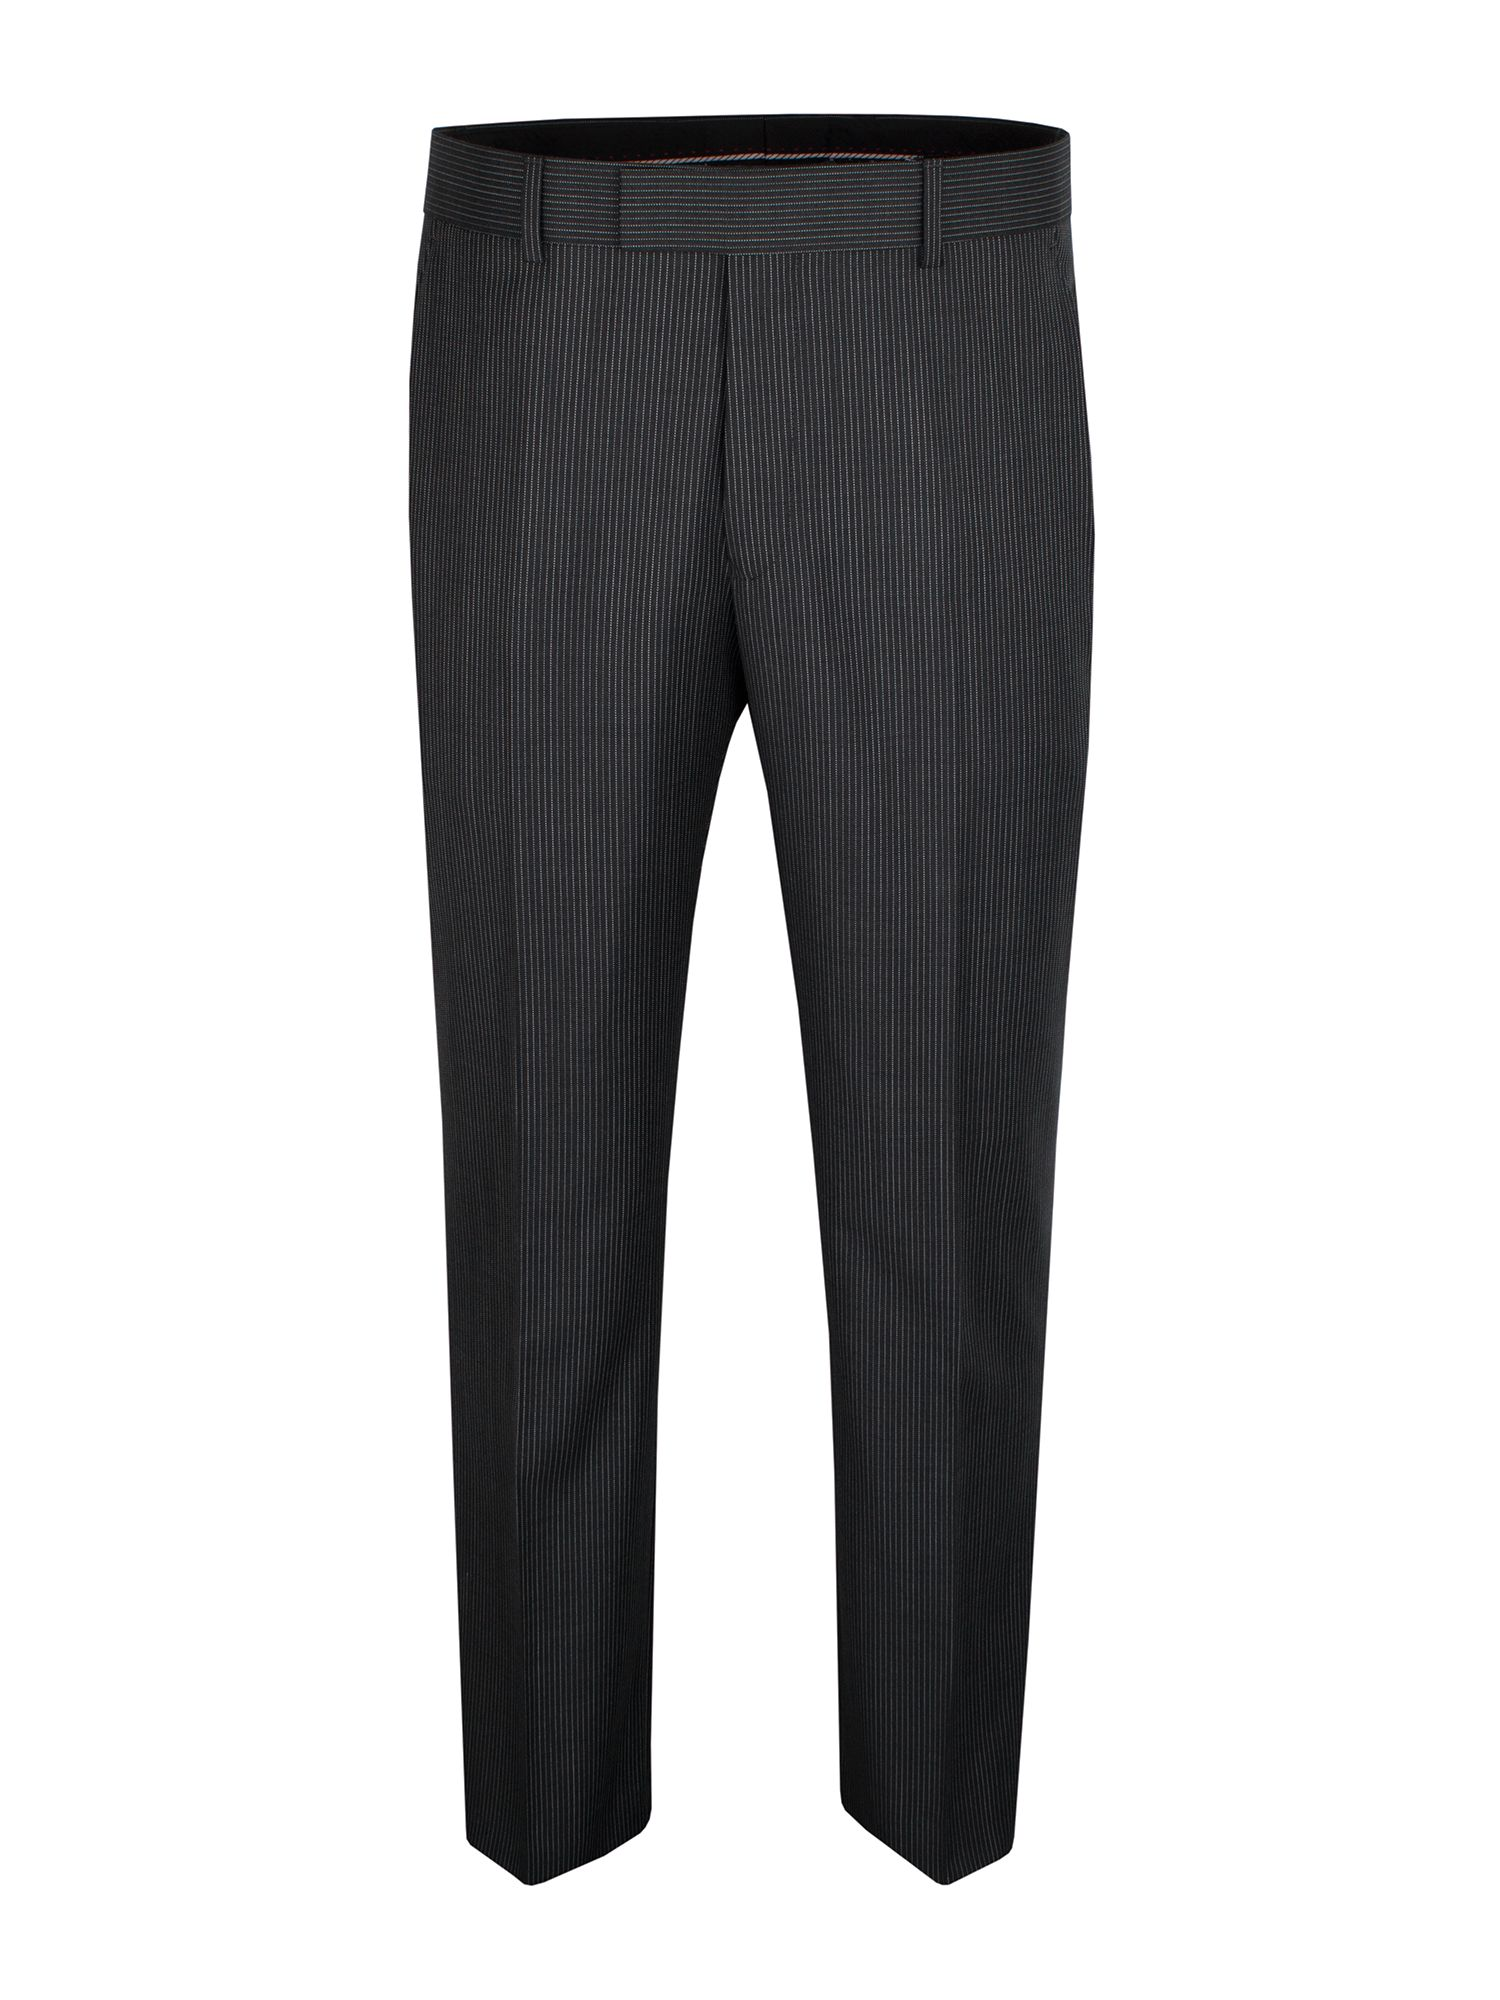 Charcoal narrow stripe trousers